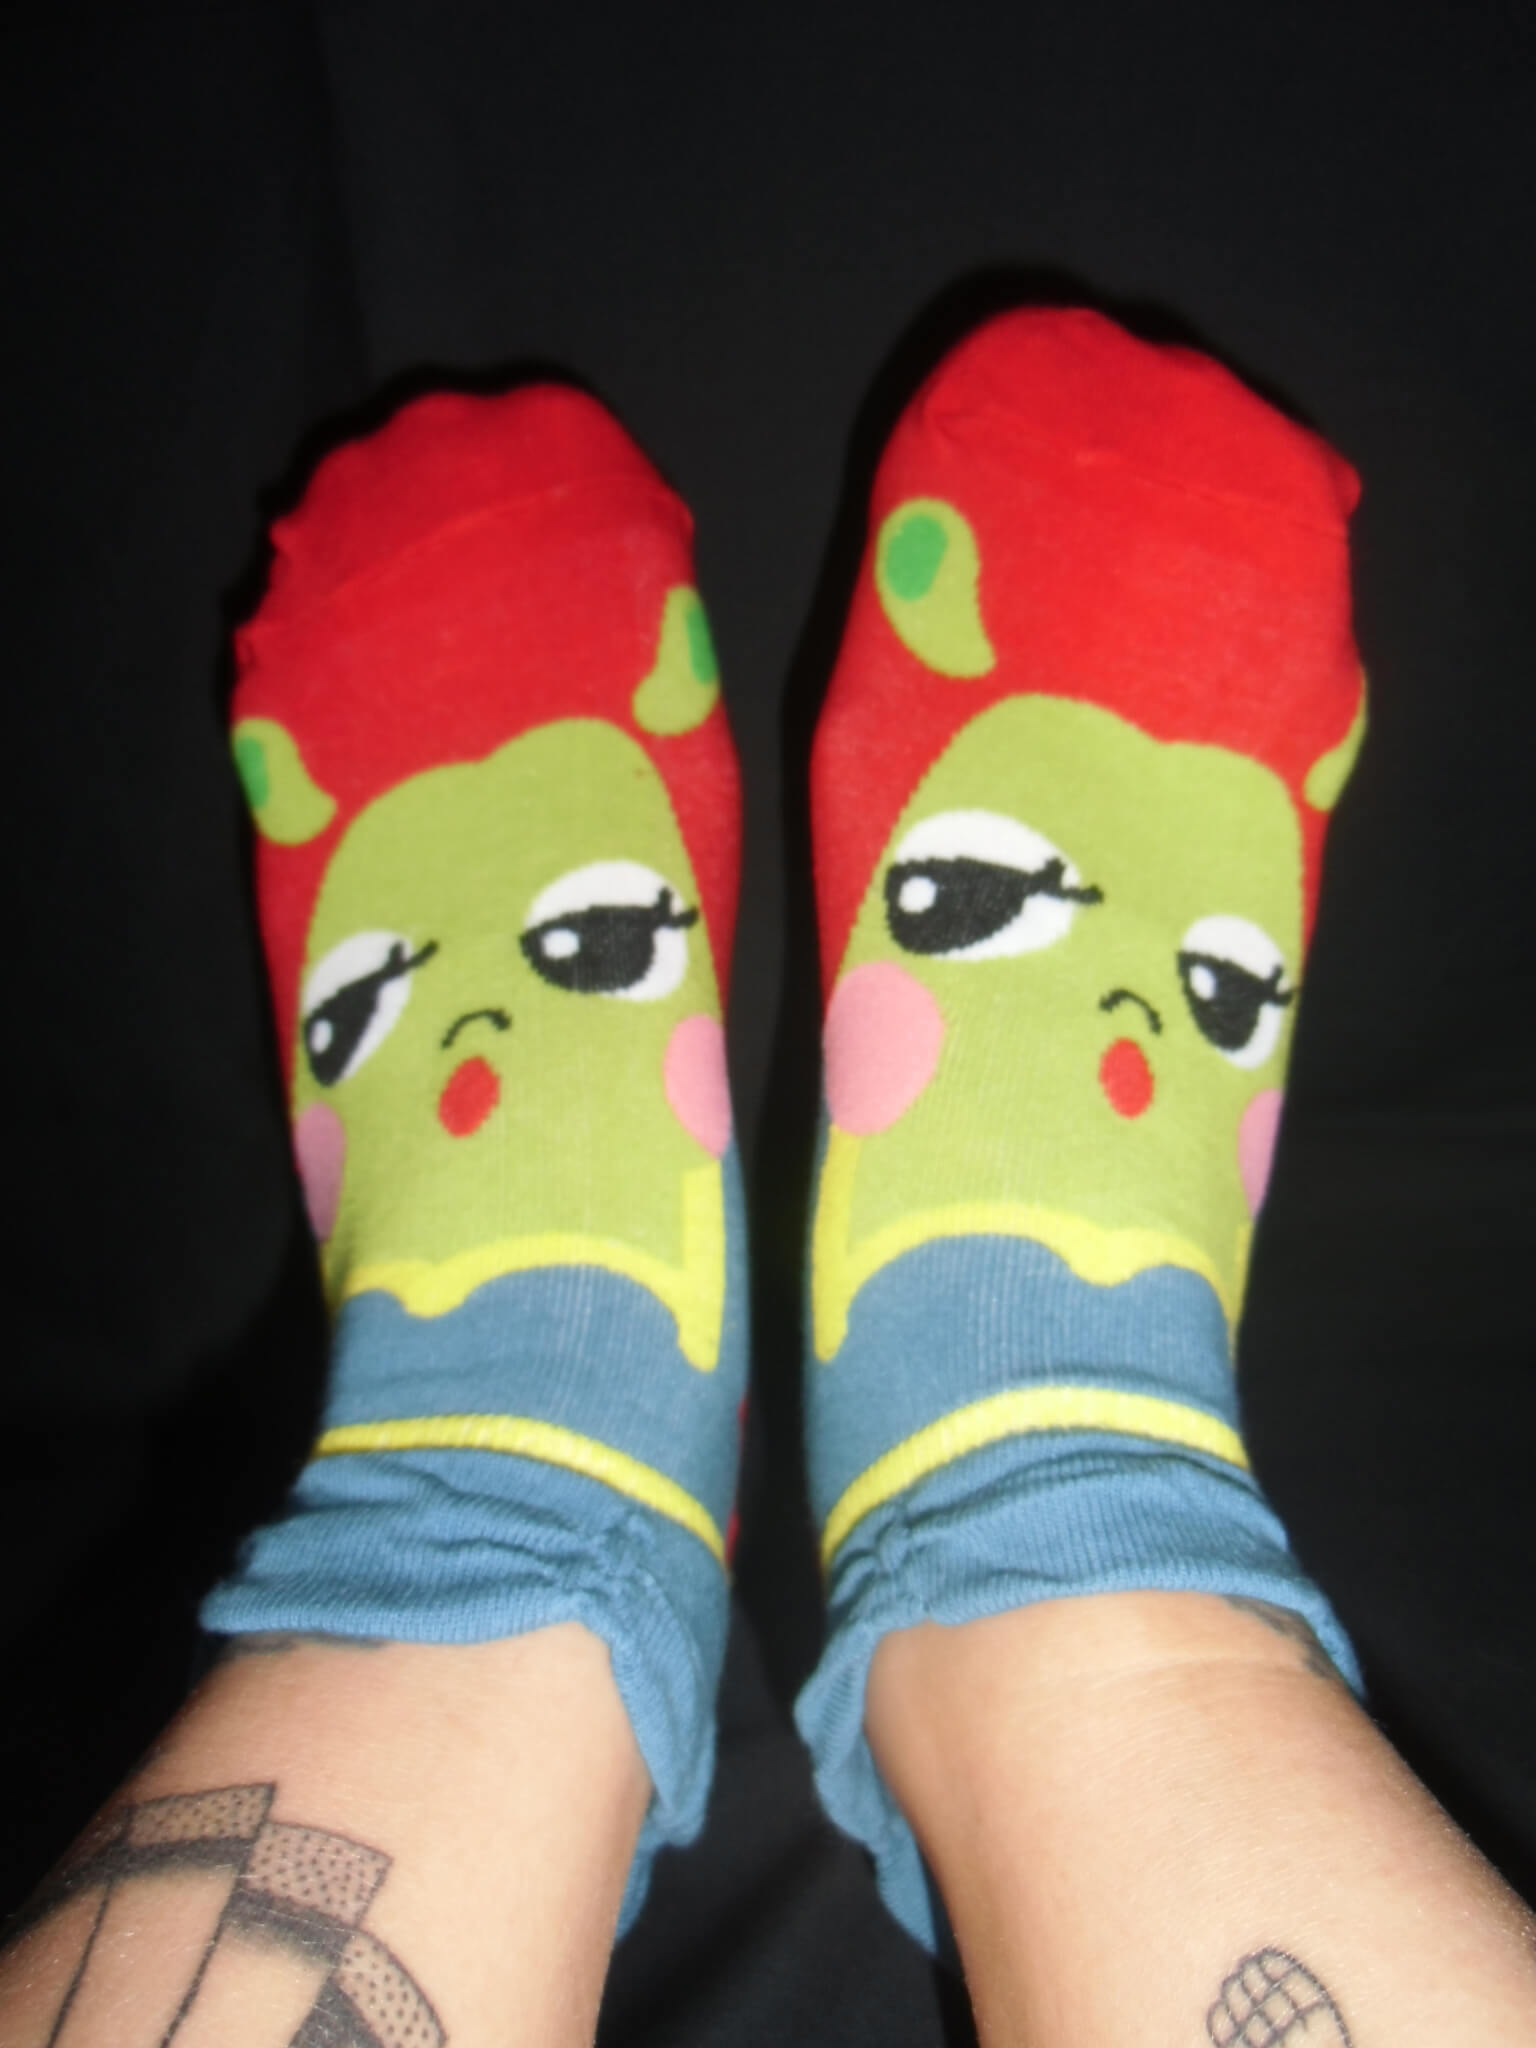 Chaussettes princesse cartoon ogresse Shrek Fiona